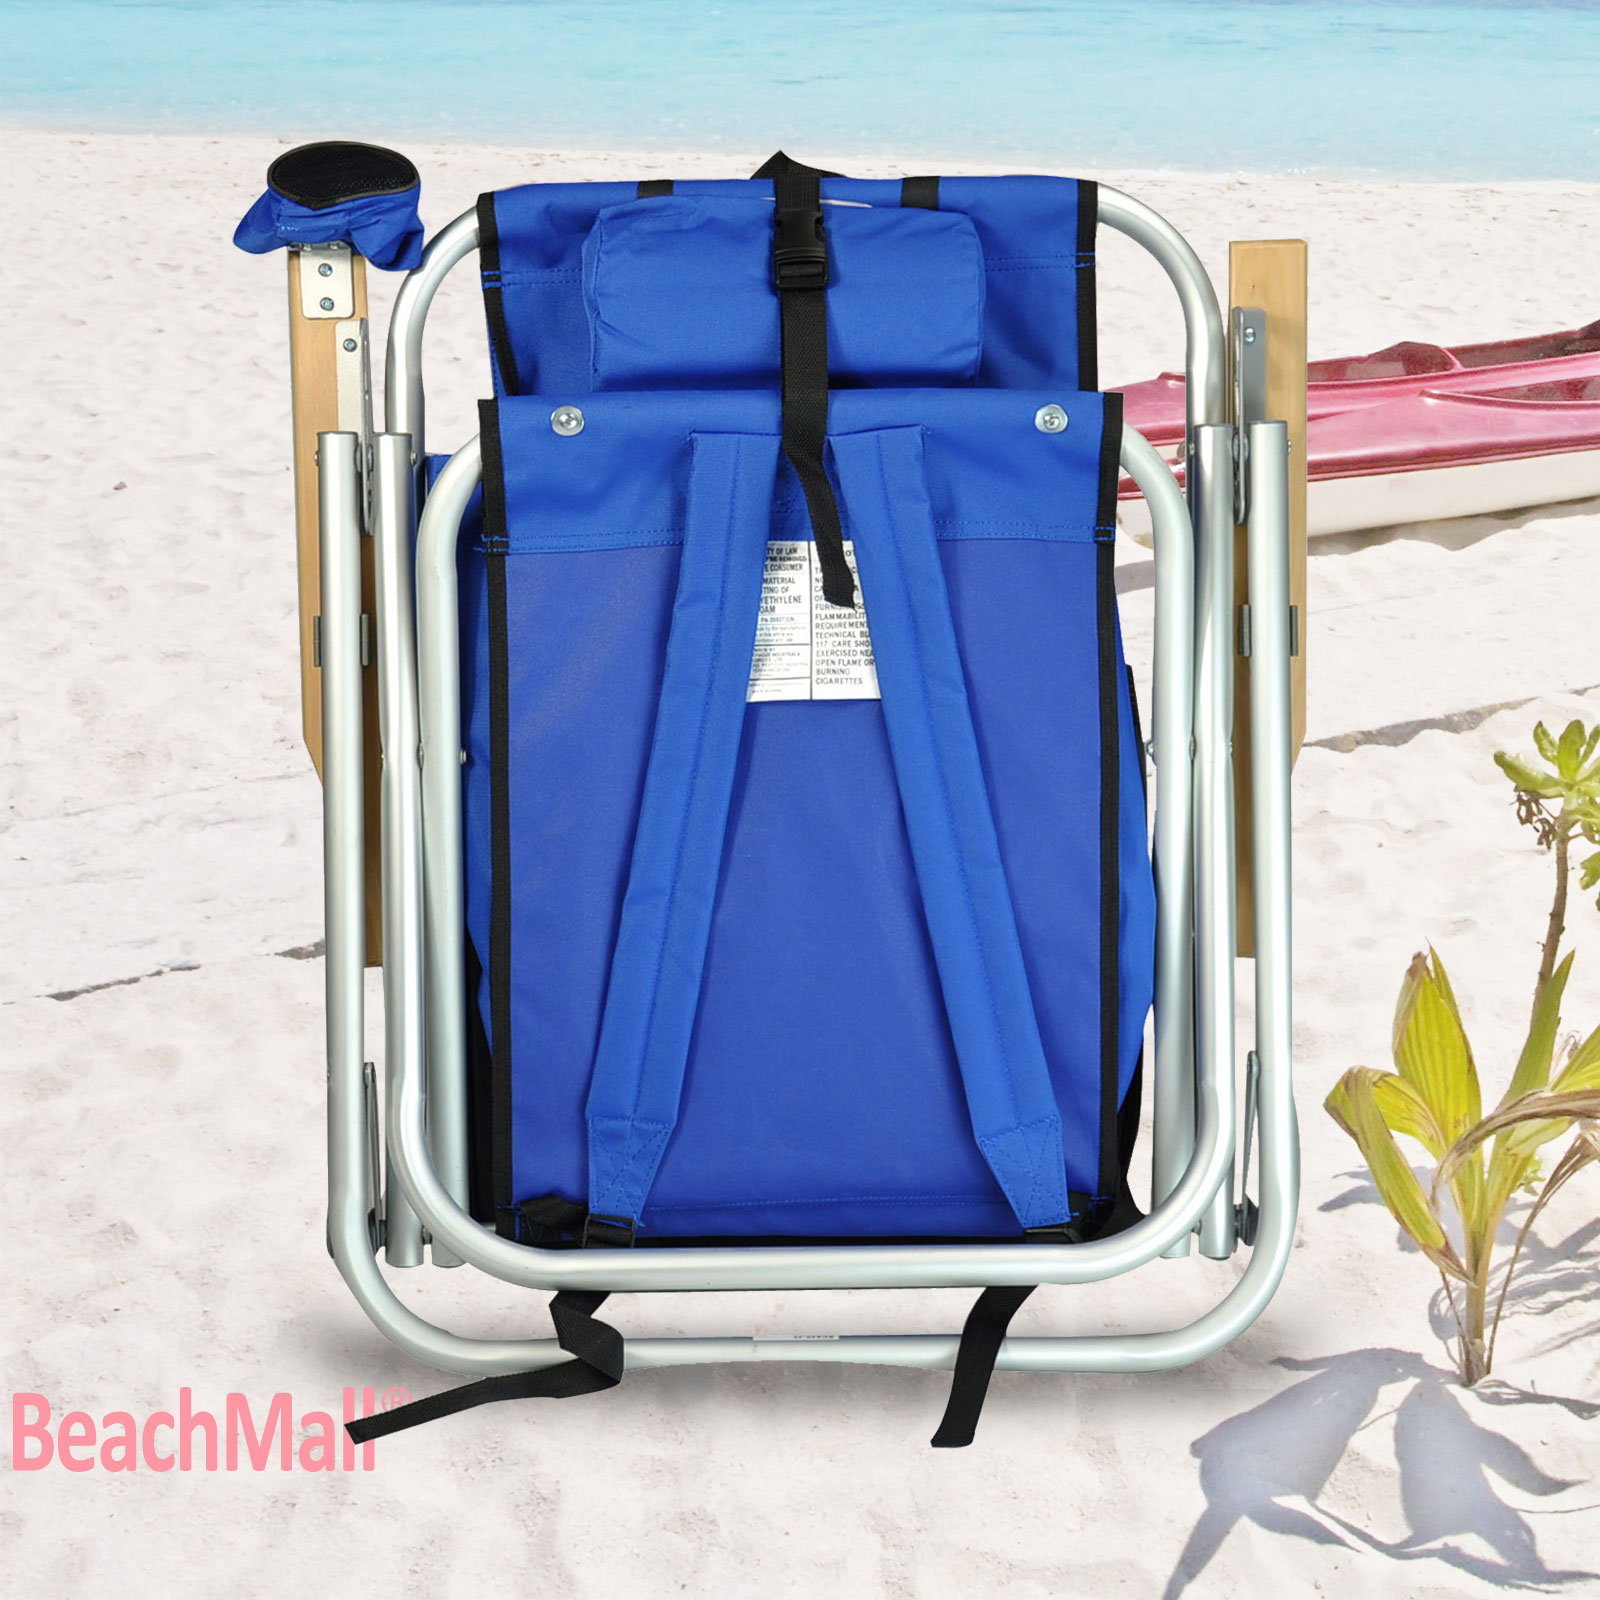 Aluminum Rio Backpack Beach Chair Camping Chair W Mesh Bag Set